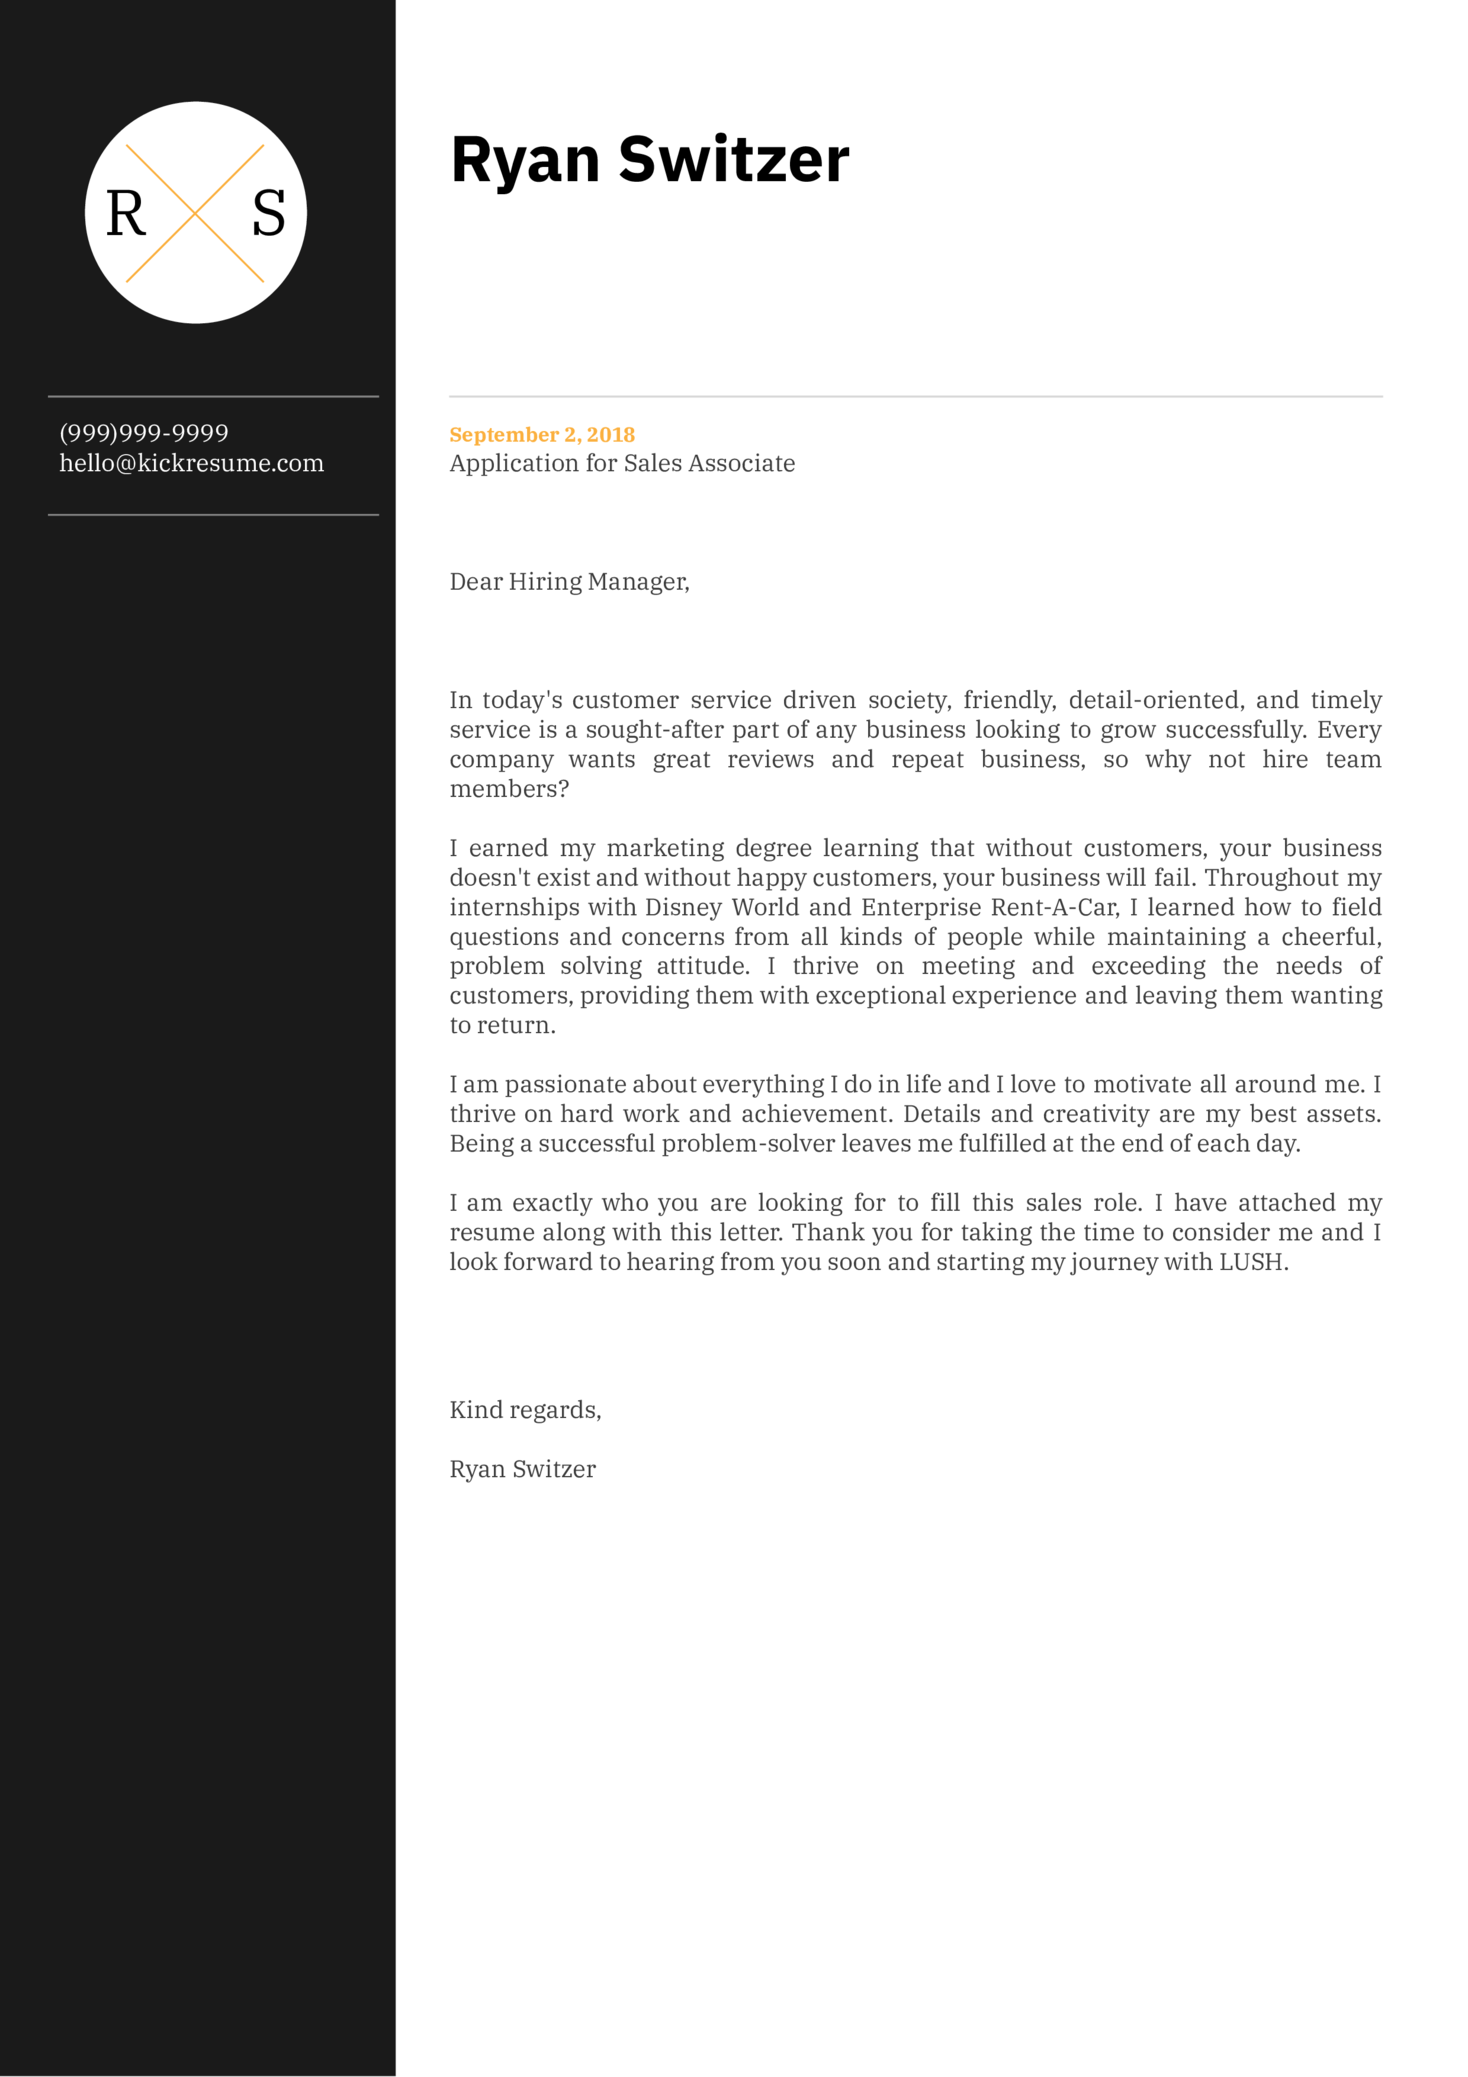 Sales Associate at LUSH Cover Letter Example